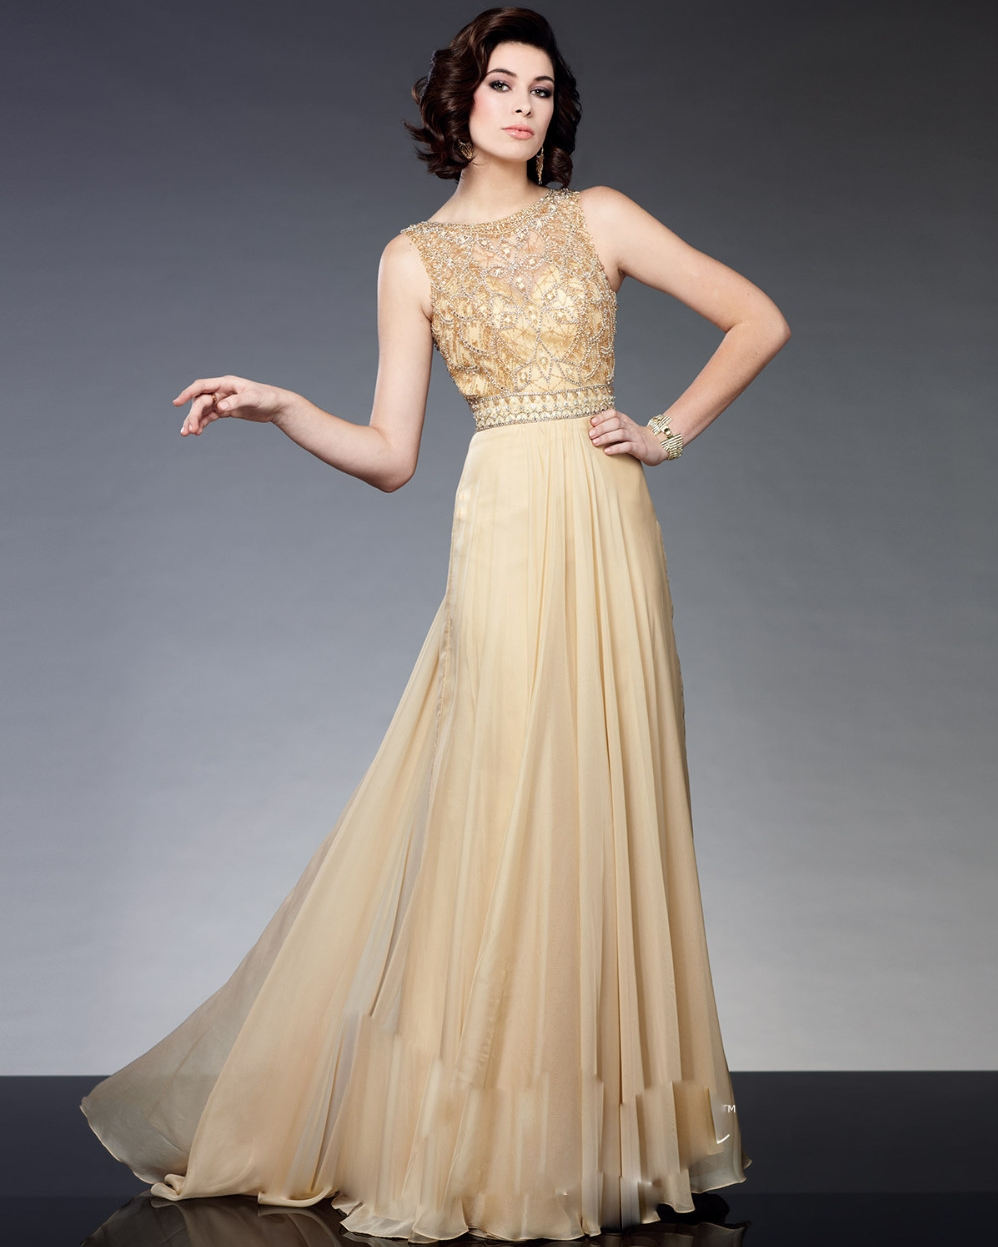 Mother Gown For Wedding: Elegant Long Mother Of The Bride Dresses 2016 Champagne